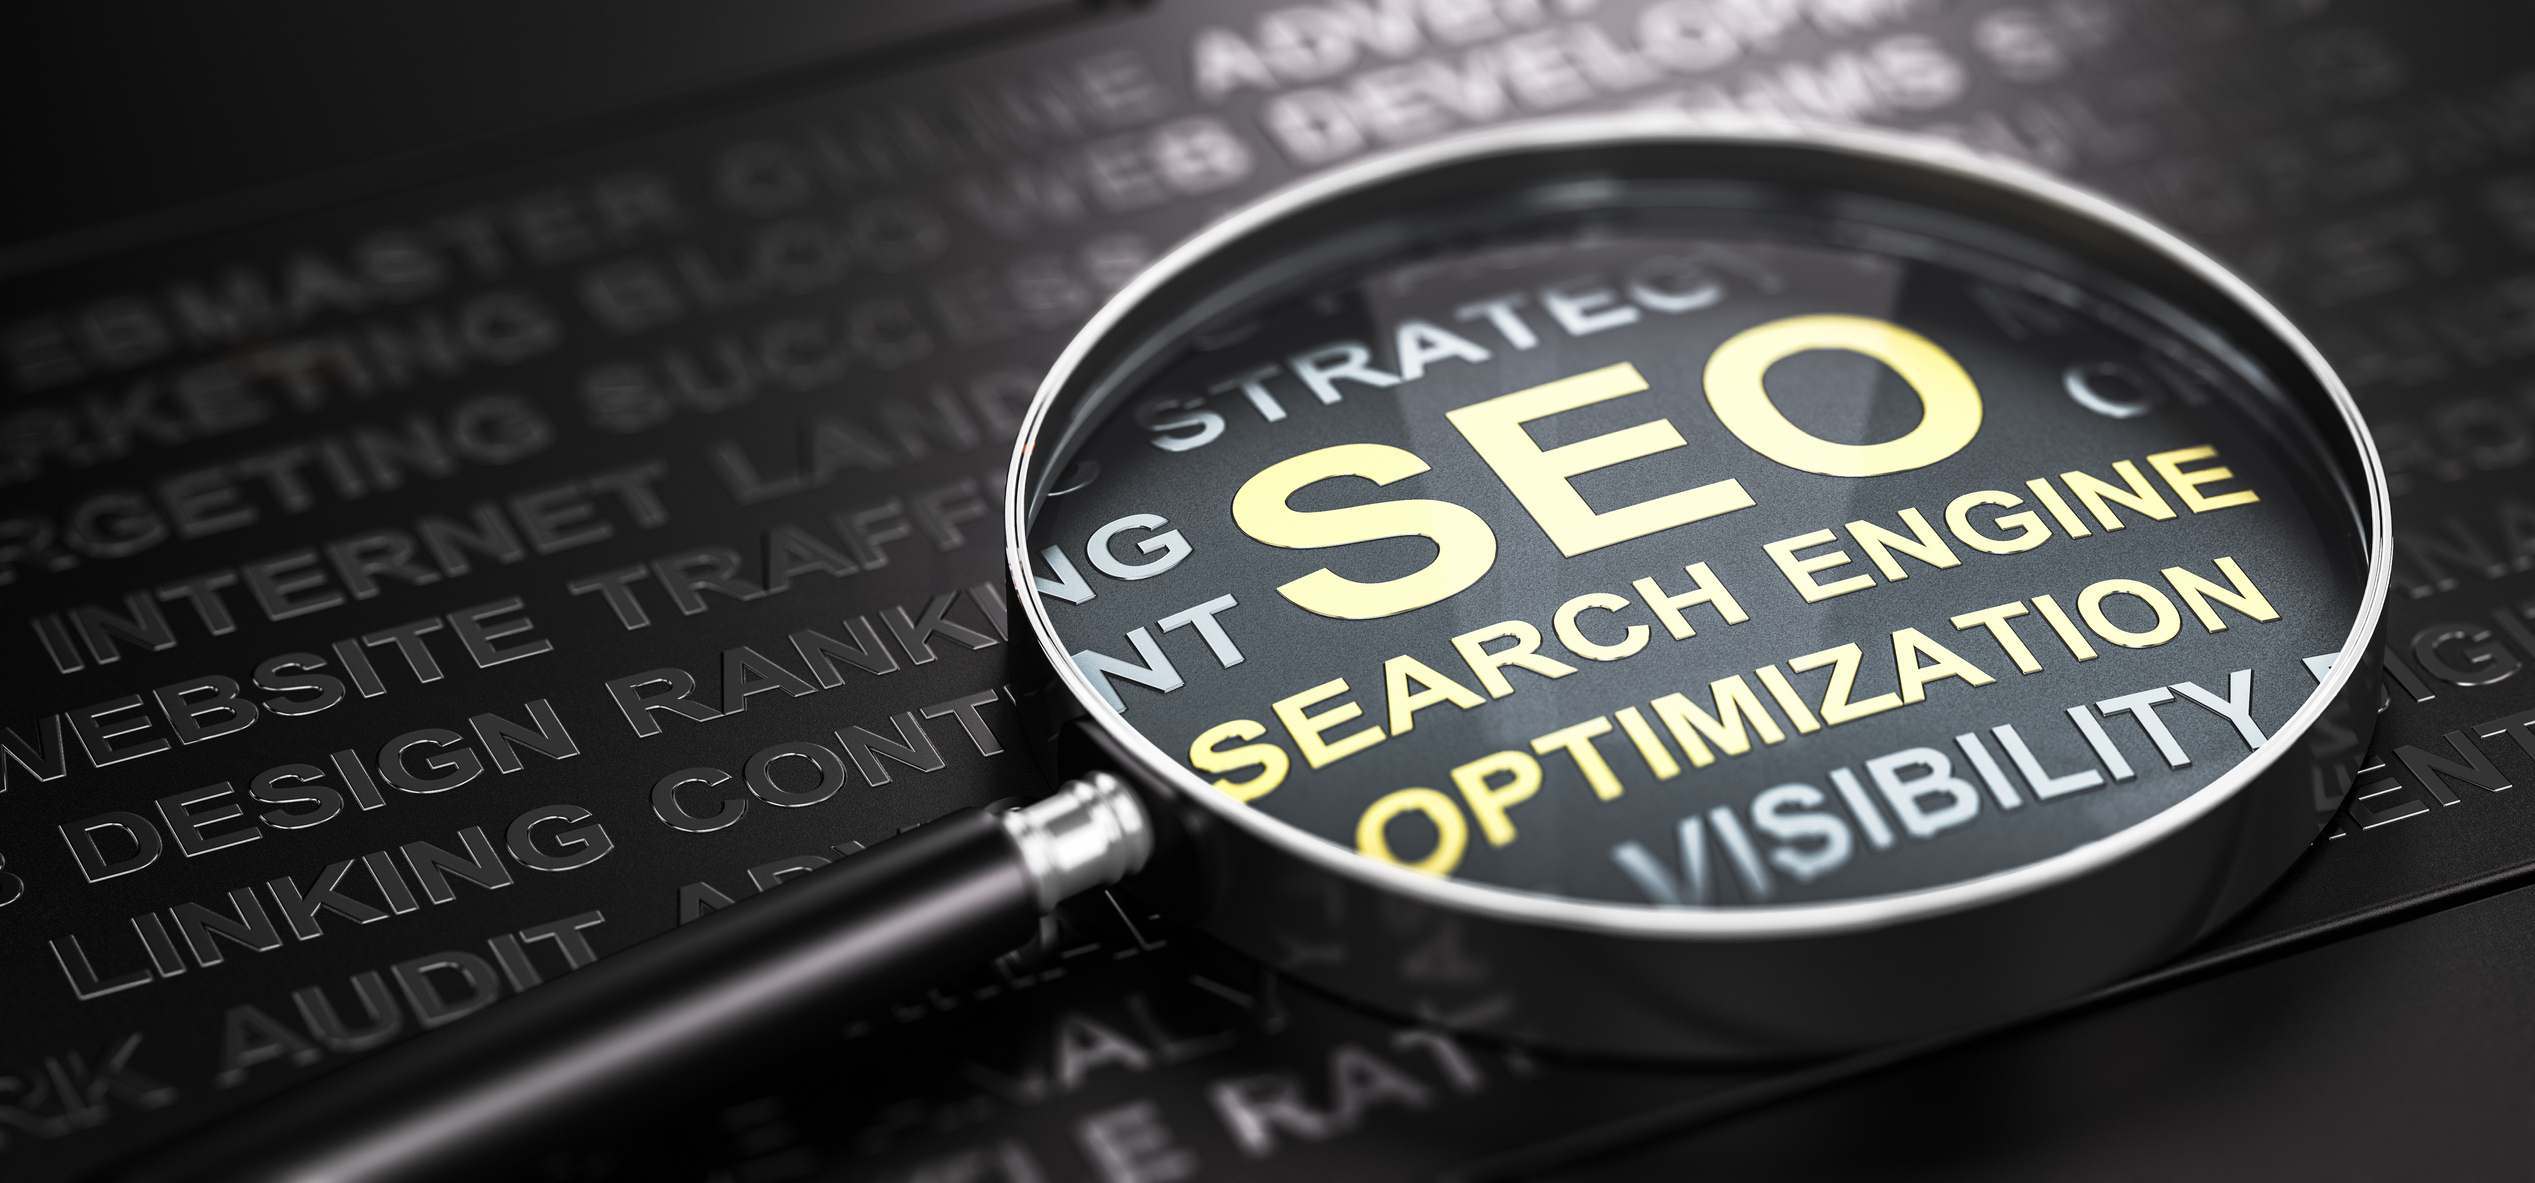 3 Easy Tricks for SEO-Friendly Content Production